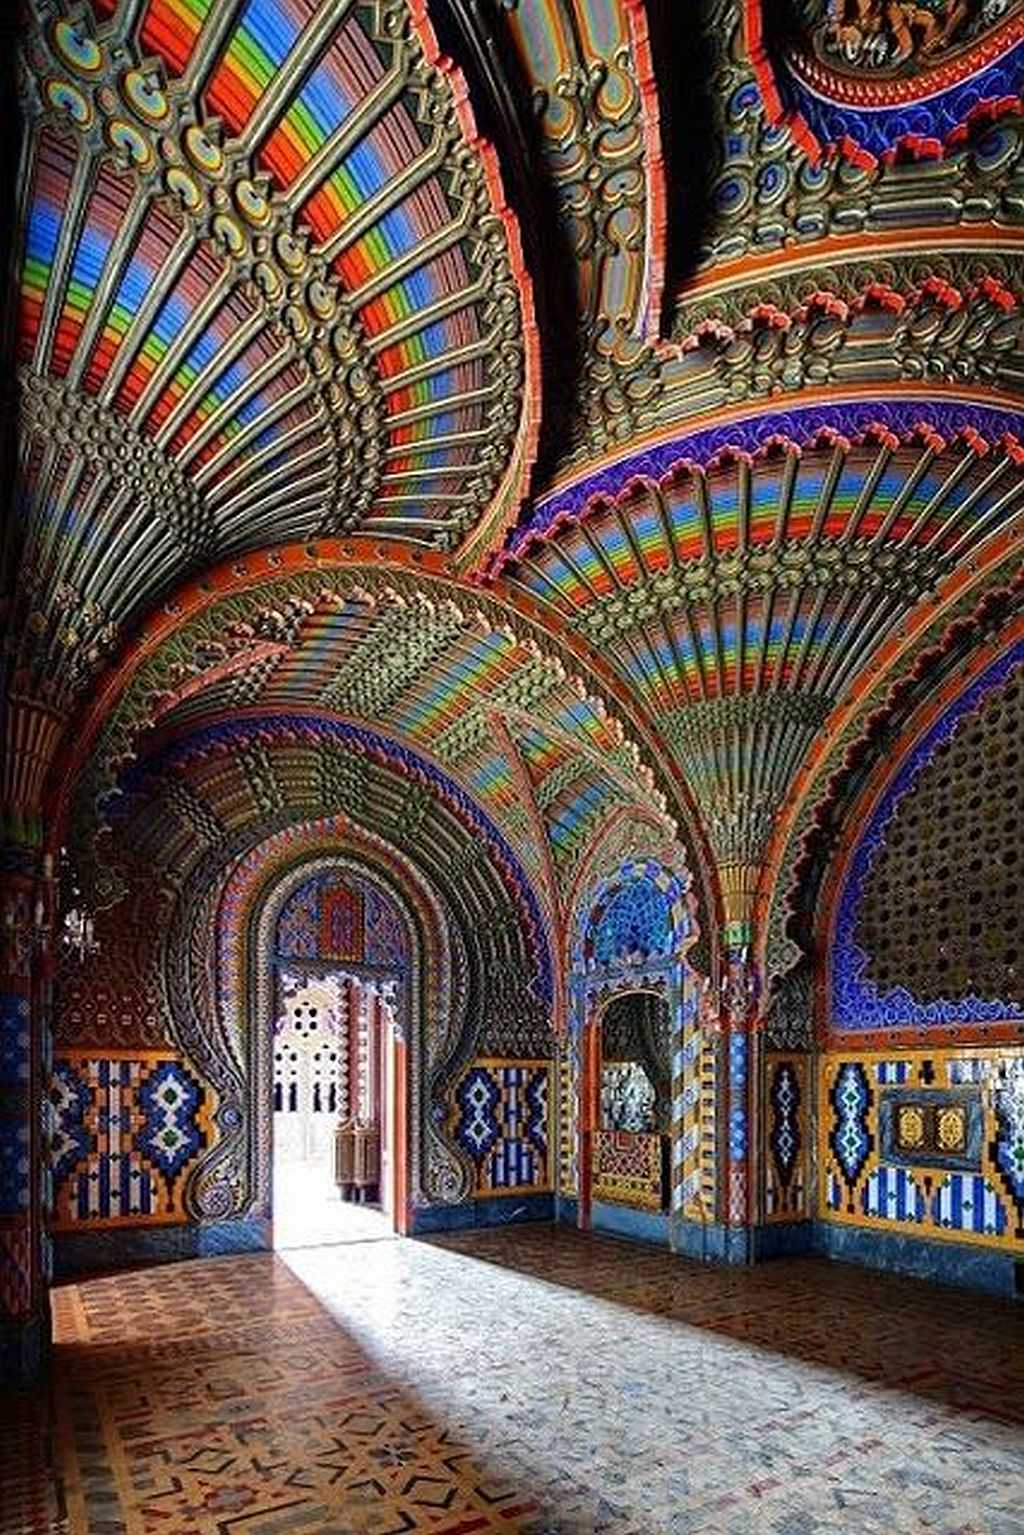 peacock_room_at_-castello_di_sammezzano_14